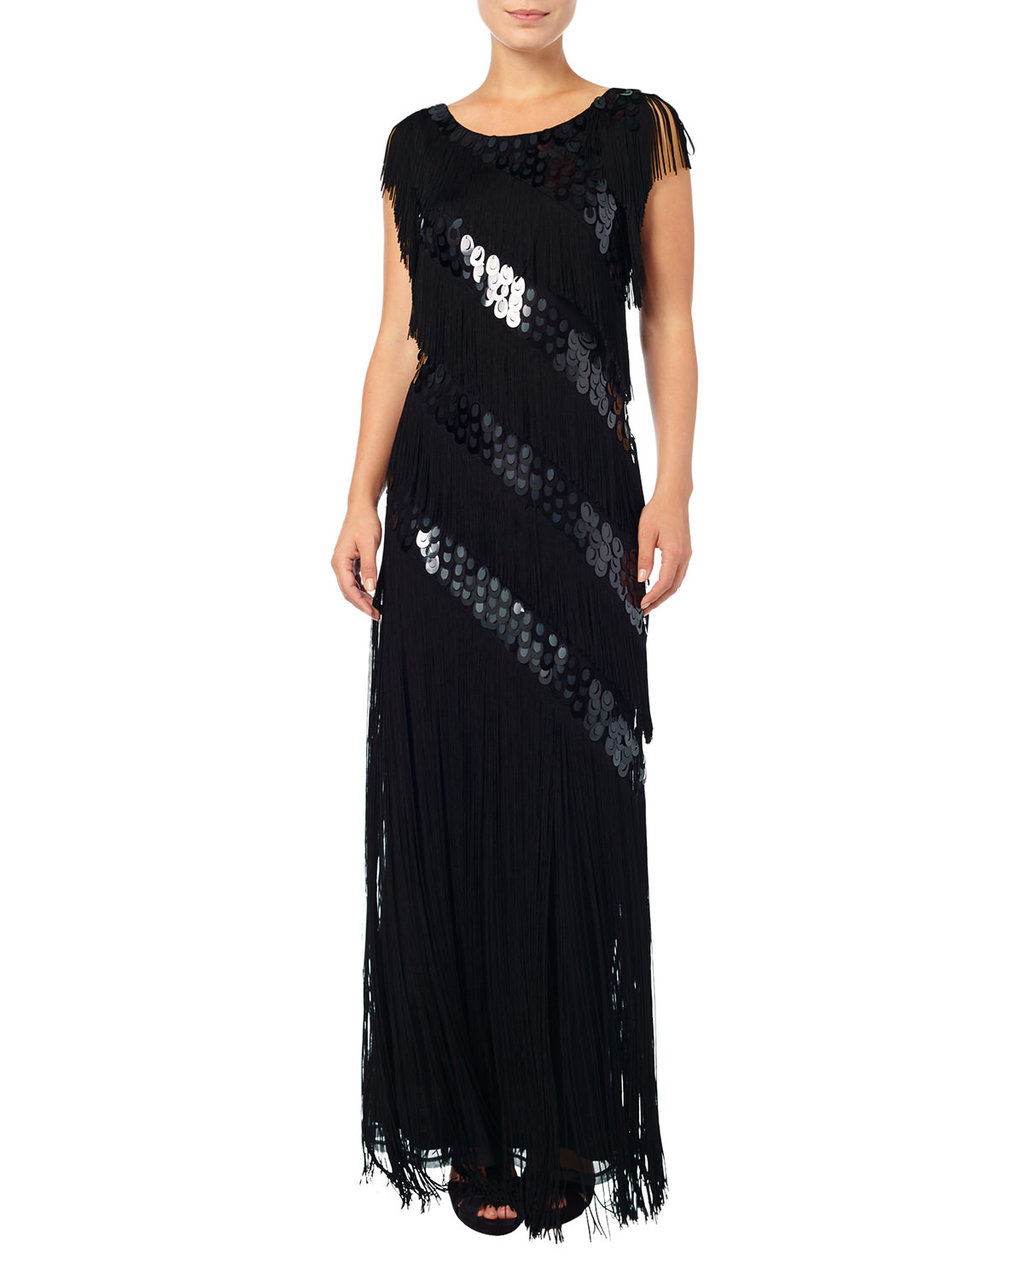 Annabeth Fringed Sequin Maxi Dress - neckline: round neck; pattern: plain; sleeve style: sleeveless; style: maxi dress; waist detail: flattering waist detail; predominant colour: black; length: floor length; fit: body skimming; fibres: polyester/polyamide - 100%; occasions: occasion; sleeve length: sleeveless; texture group: sheer fabrics/chiffon/organza etc.; pattern type: fabric; embellishment: fringing; season: a/w 2015; wardrobe: event; embellishment location: all over